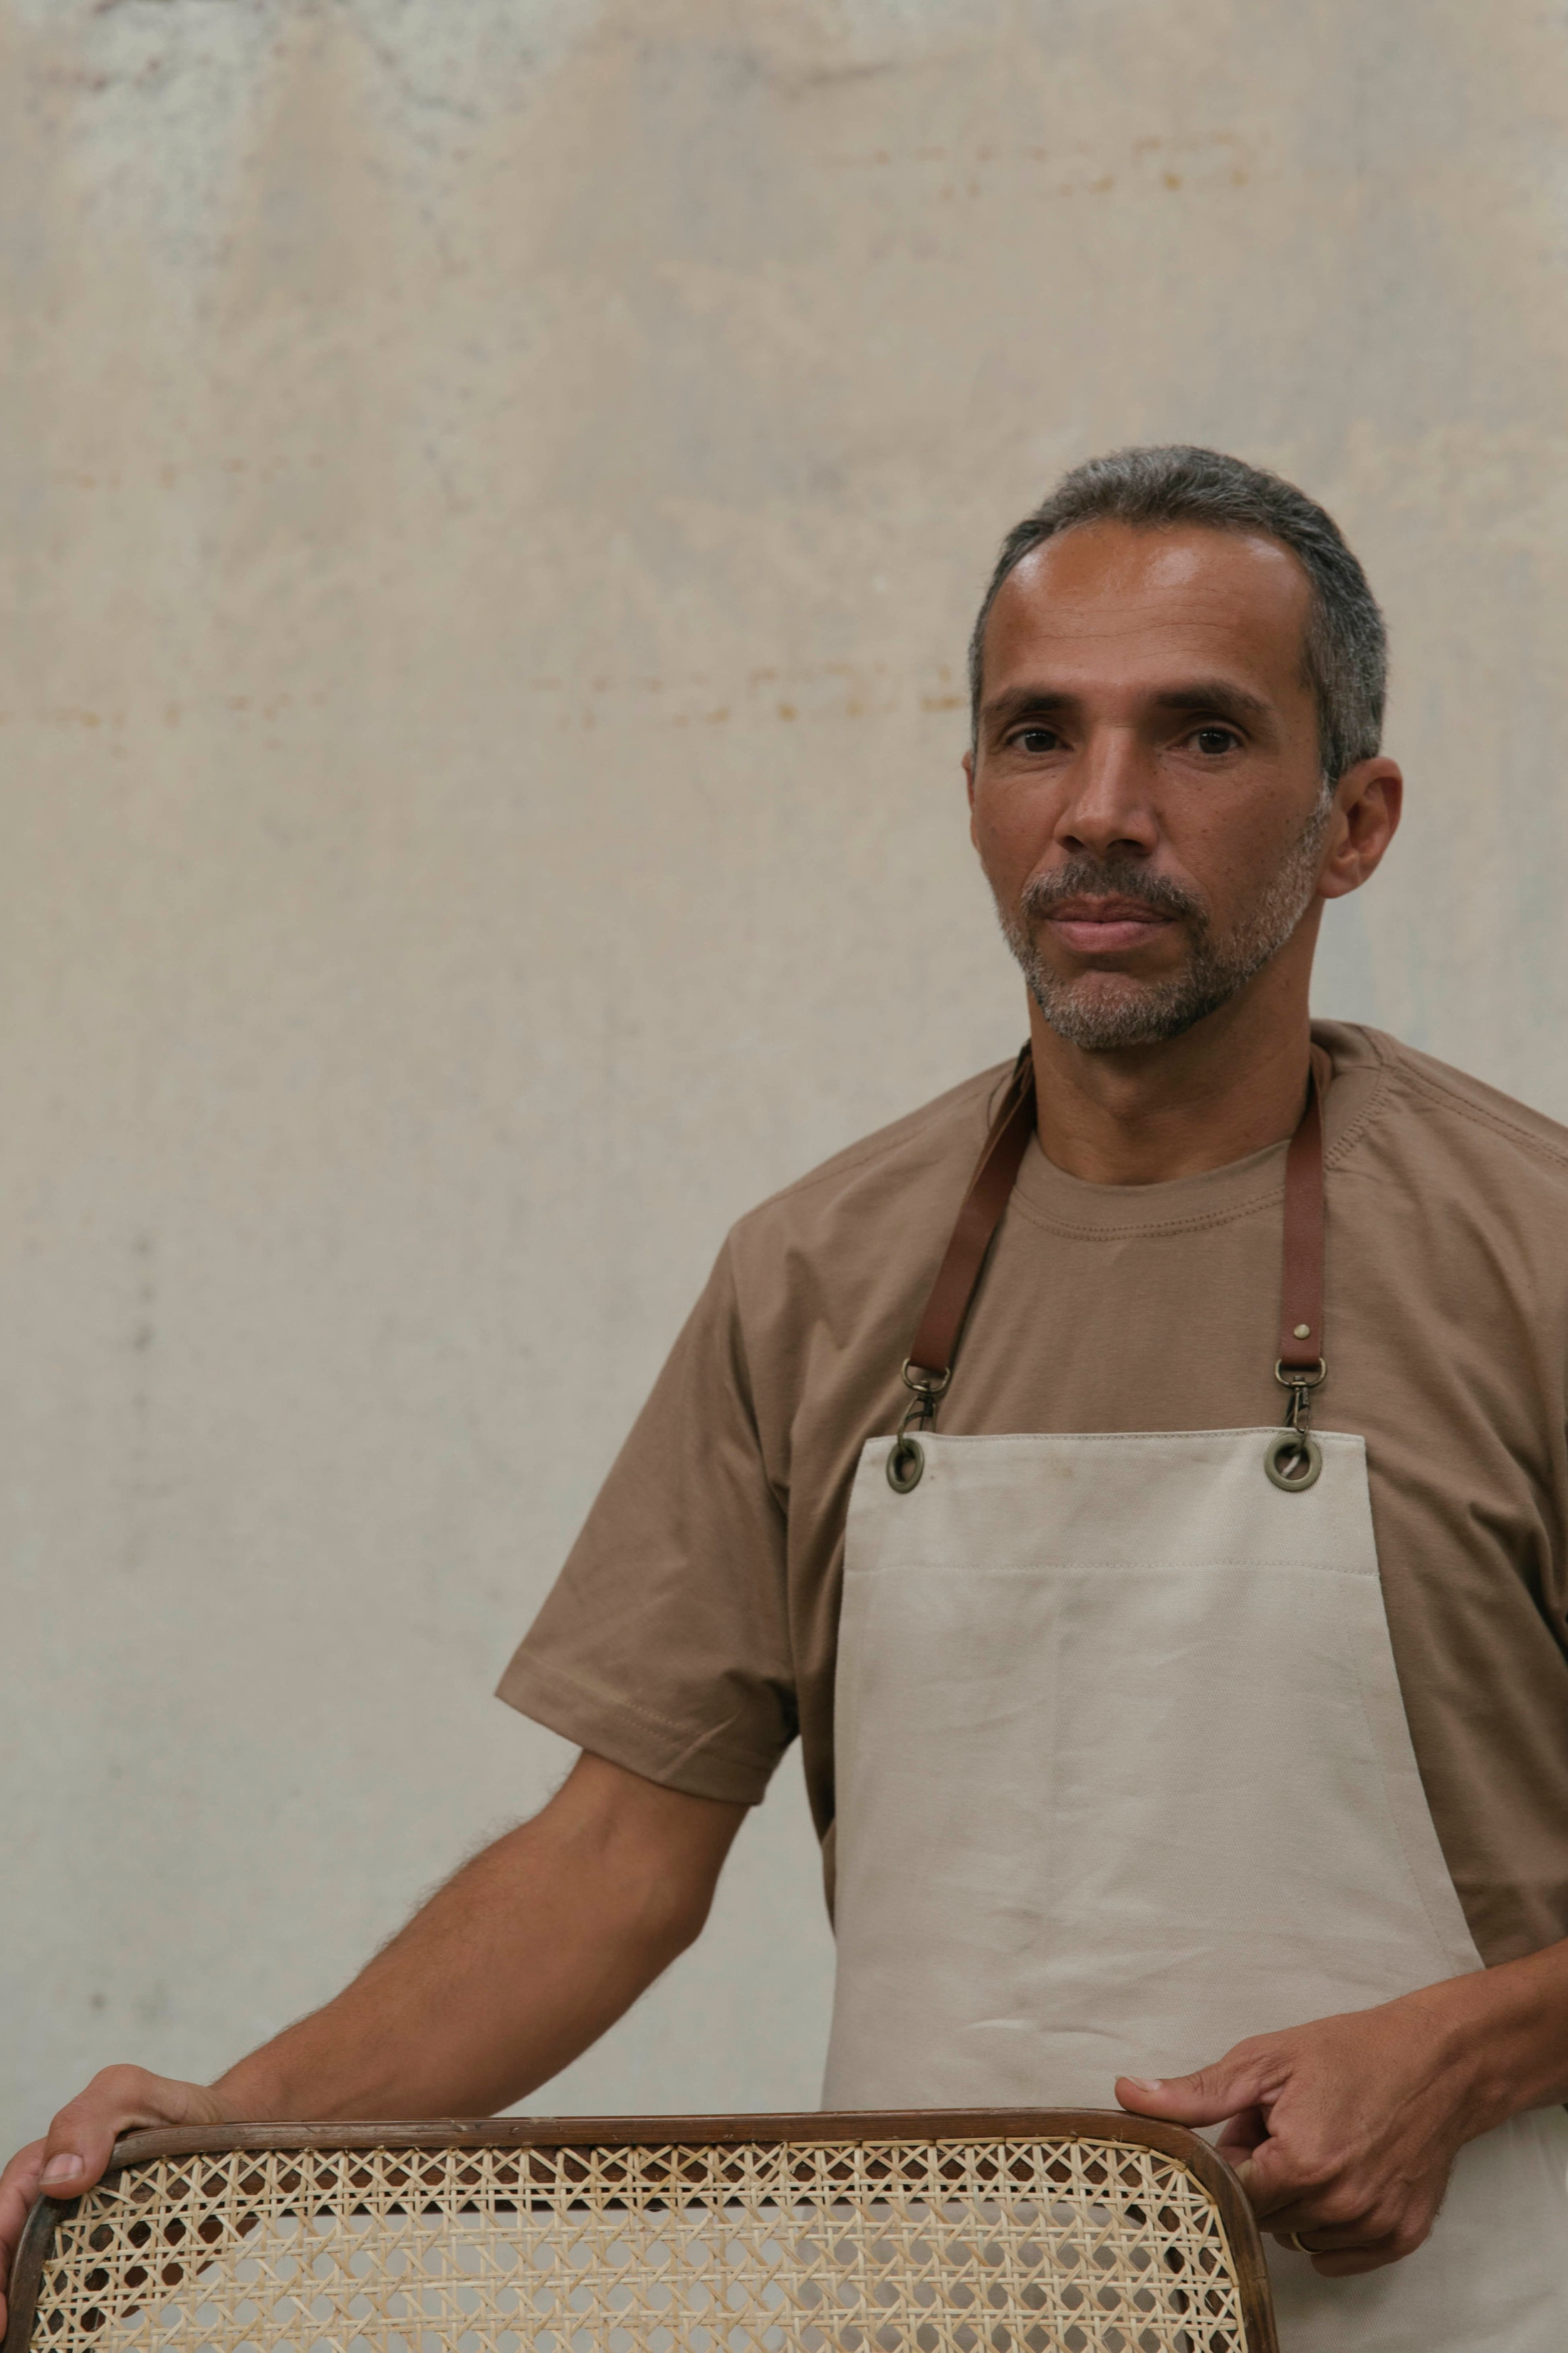 Ataíde Ferreira, 47 years old. Responsible for the straw restoration in our vintage collection.